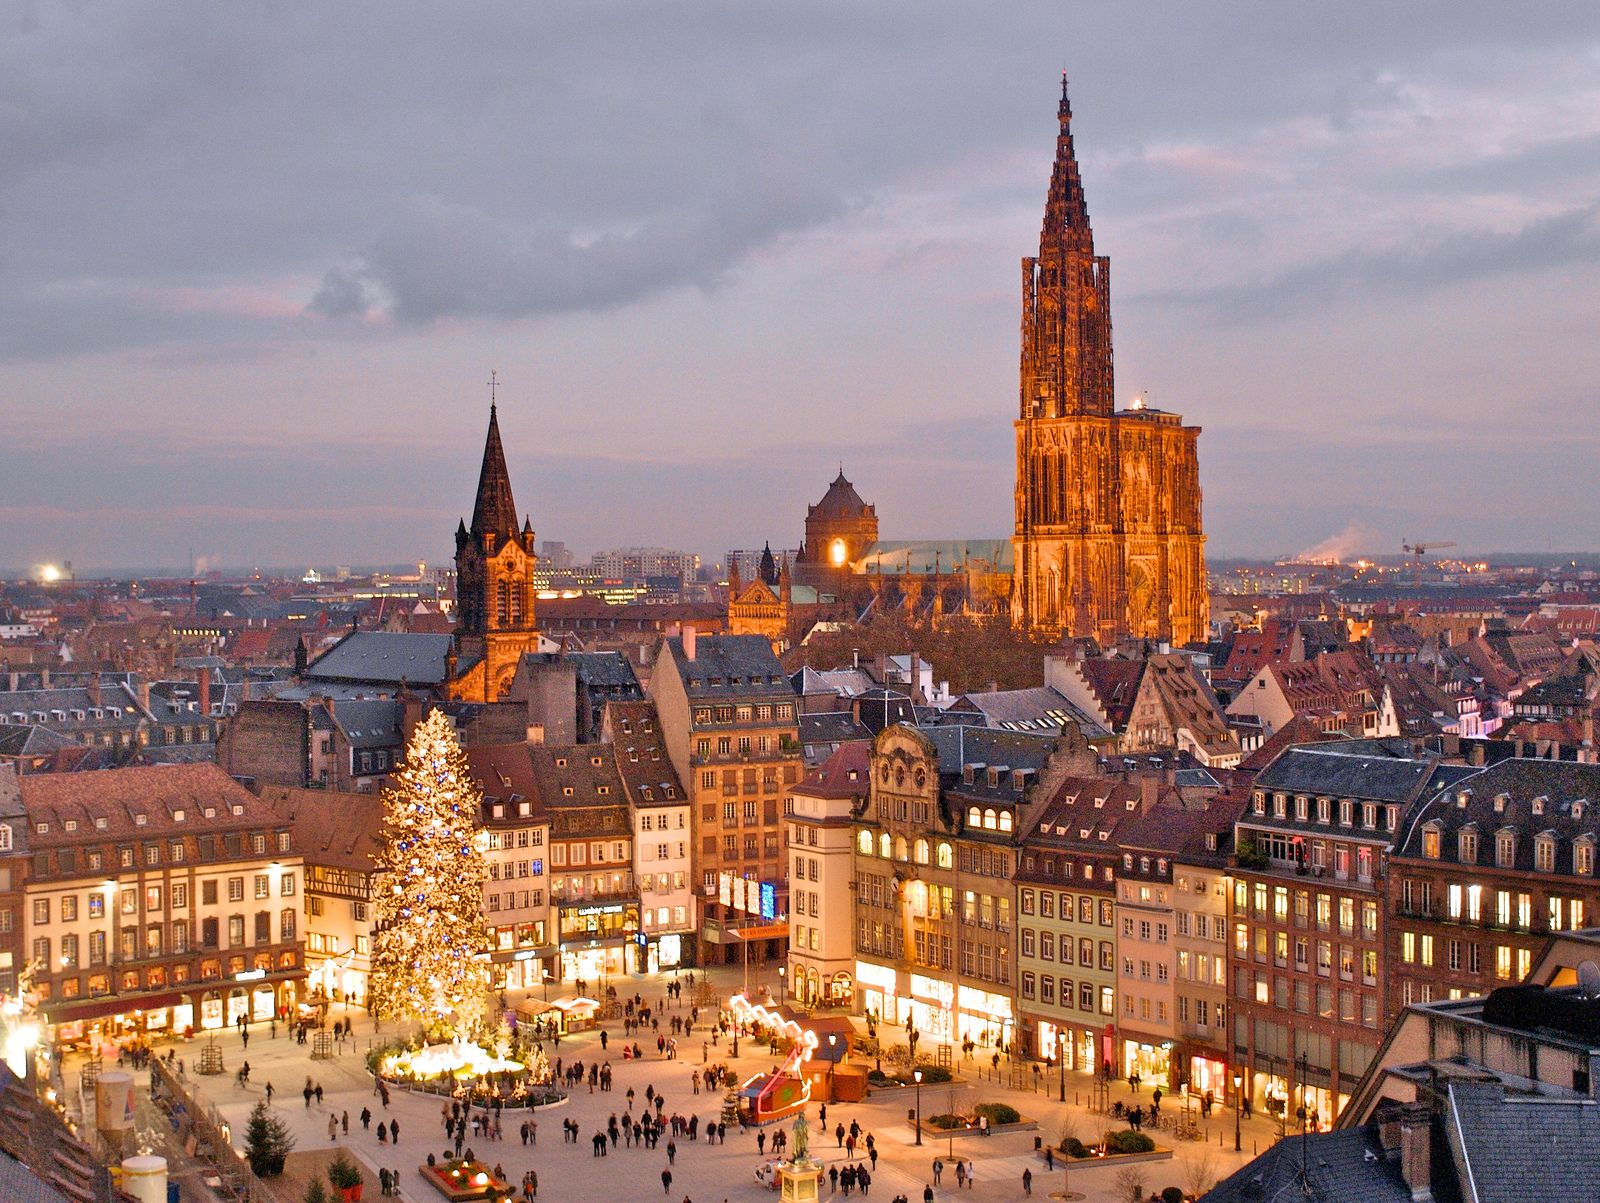 The Christmas market in Place Kléber in Strasbourg